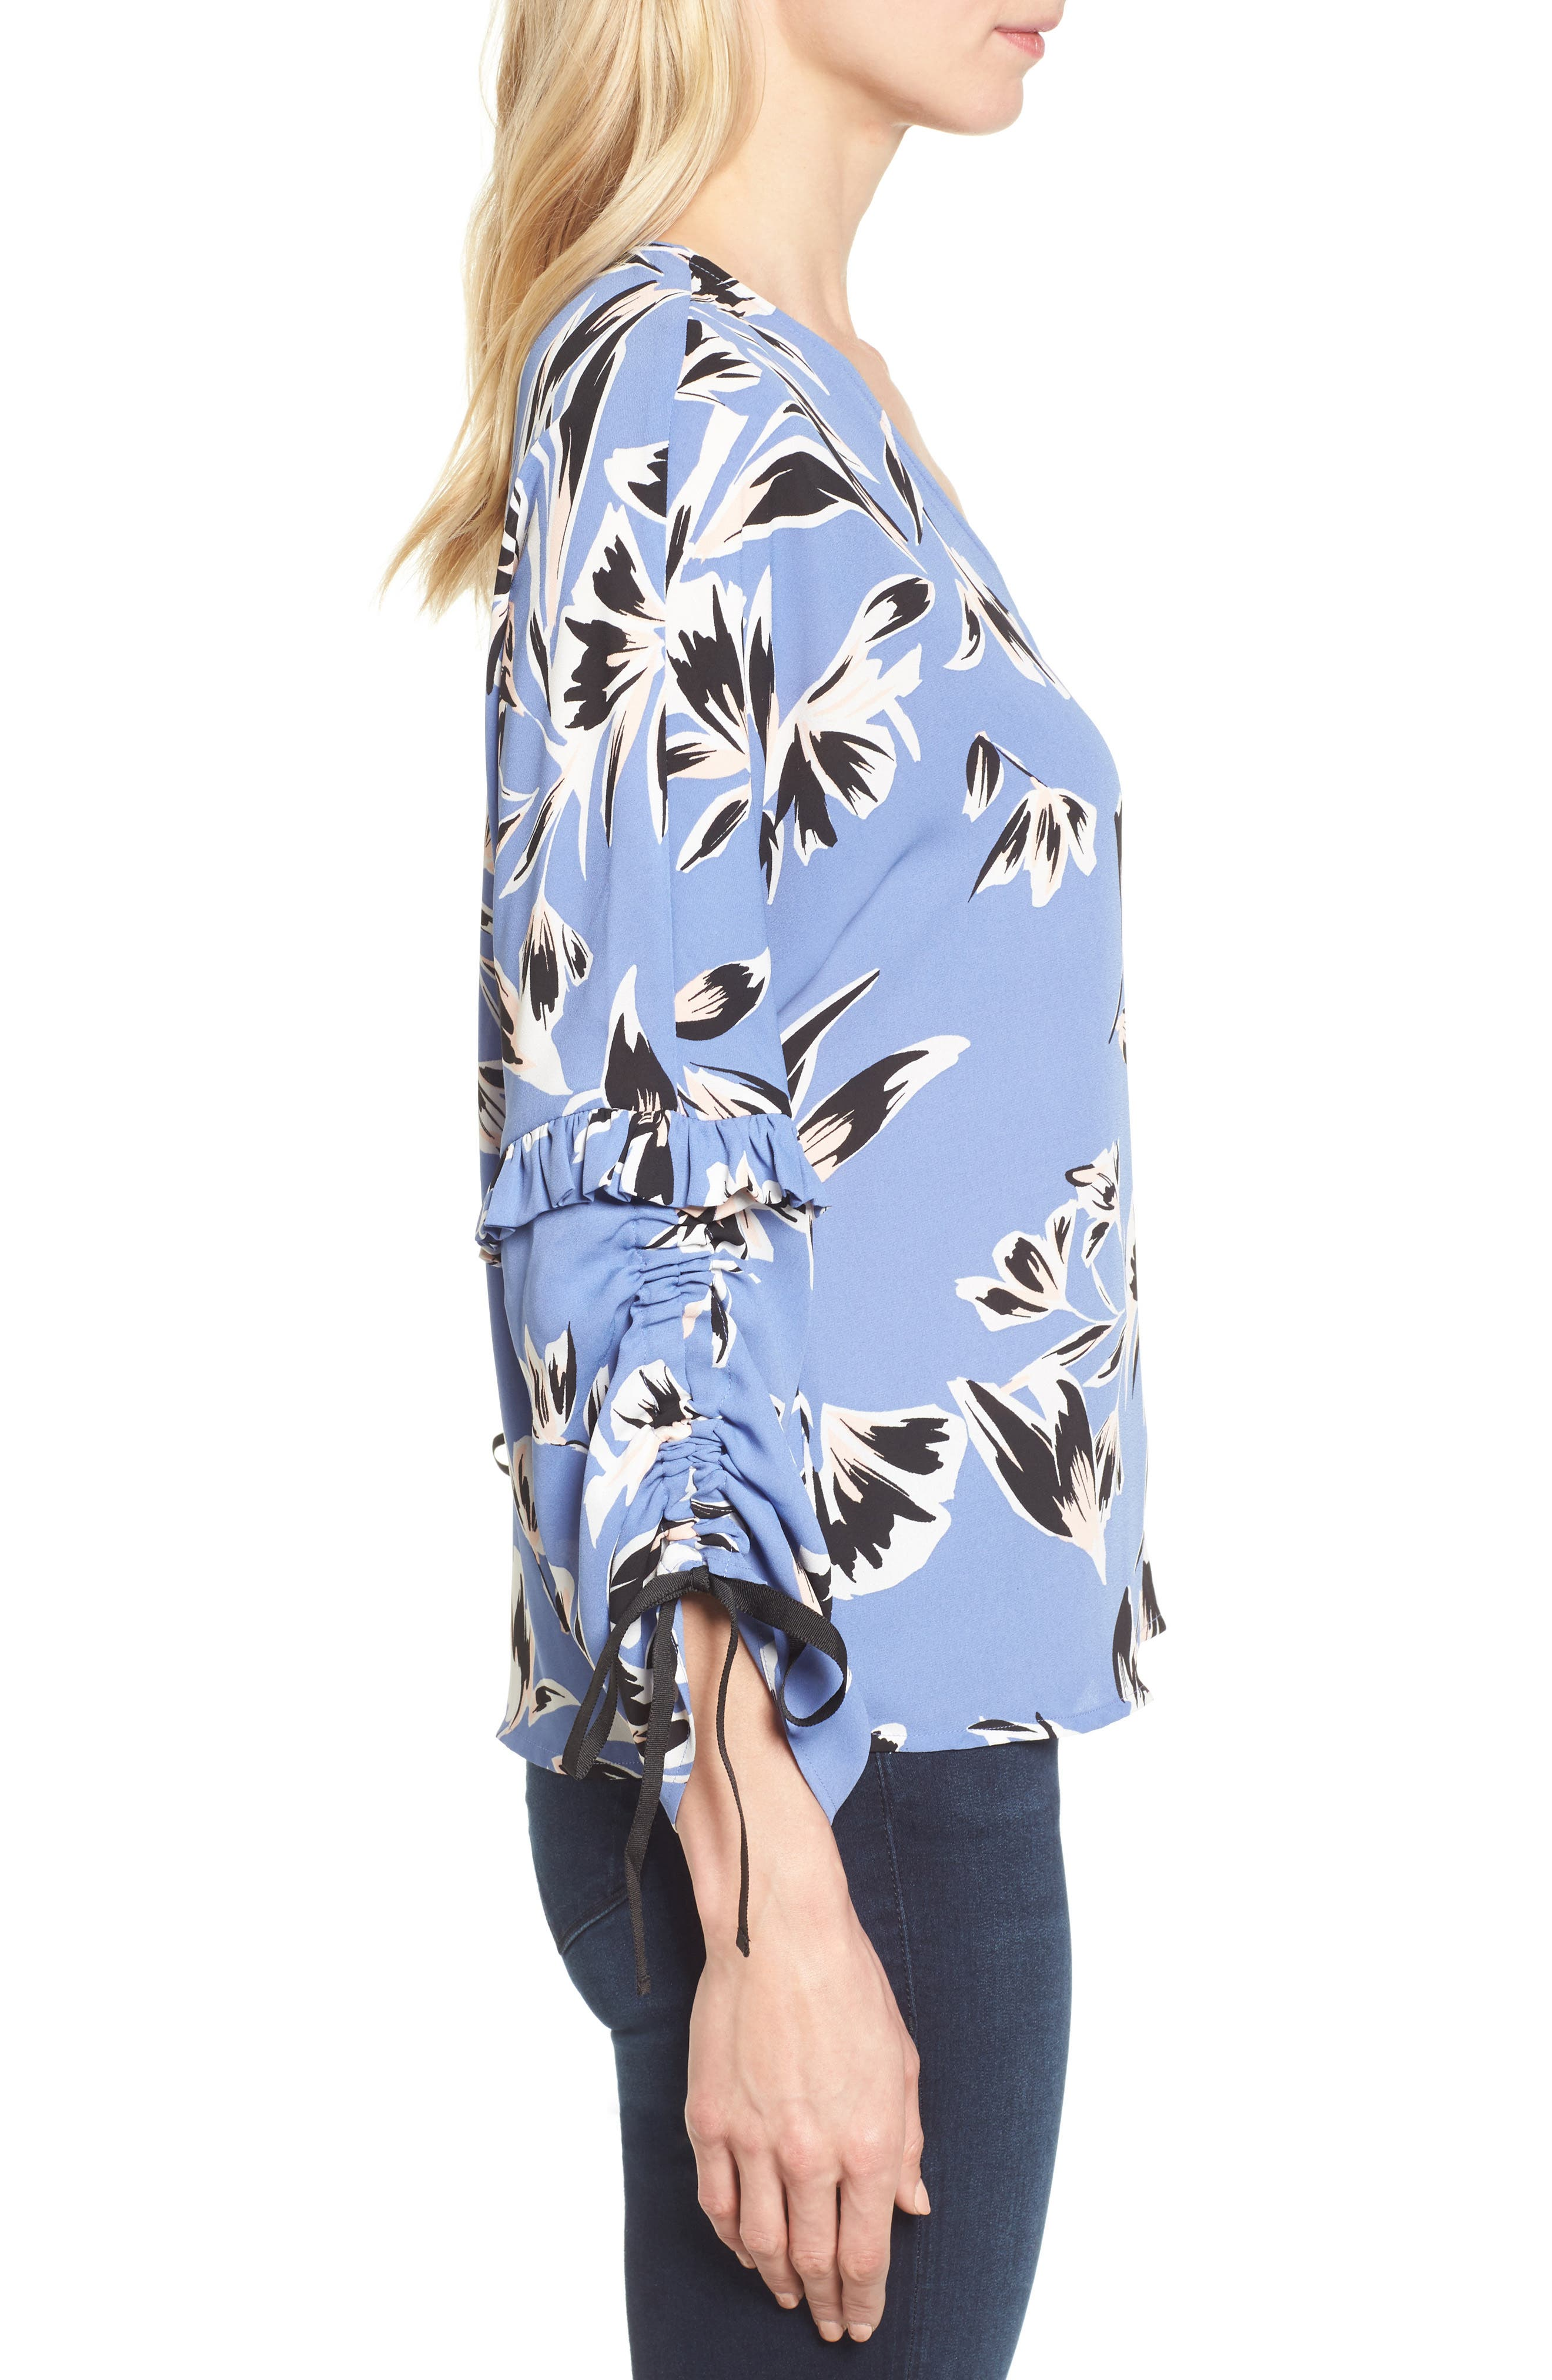 Ruched Tie Sleeve Top,                             Alternate thumbnail 3, color,                             Blue- Pink Sketch Floral